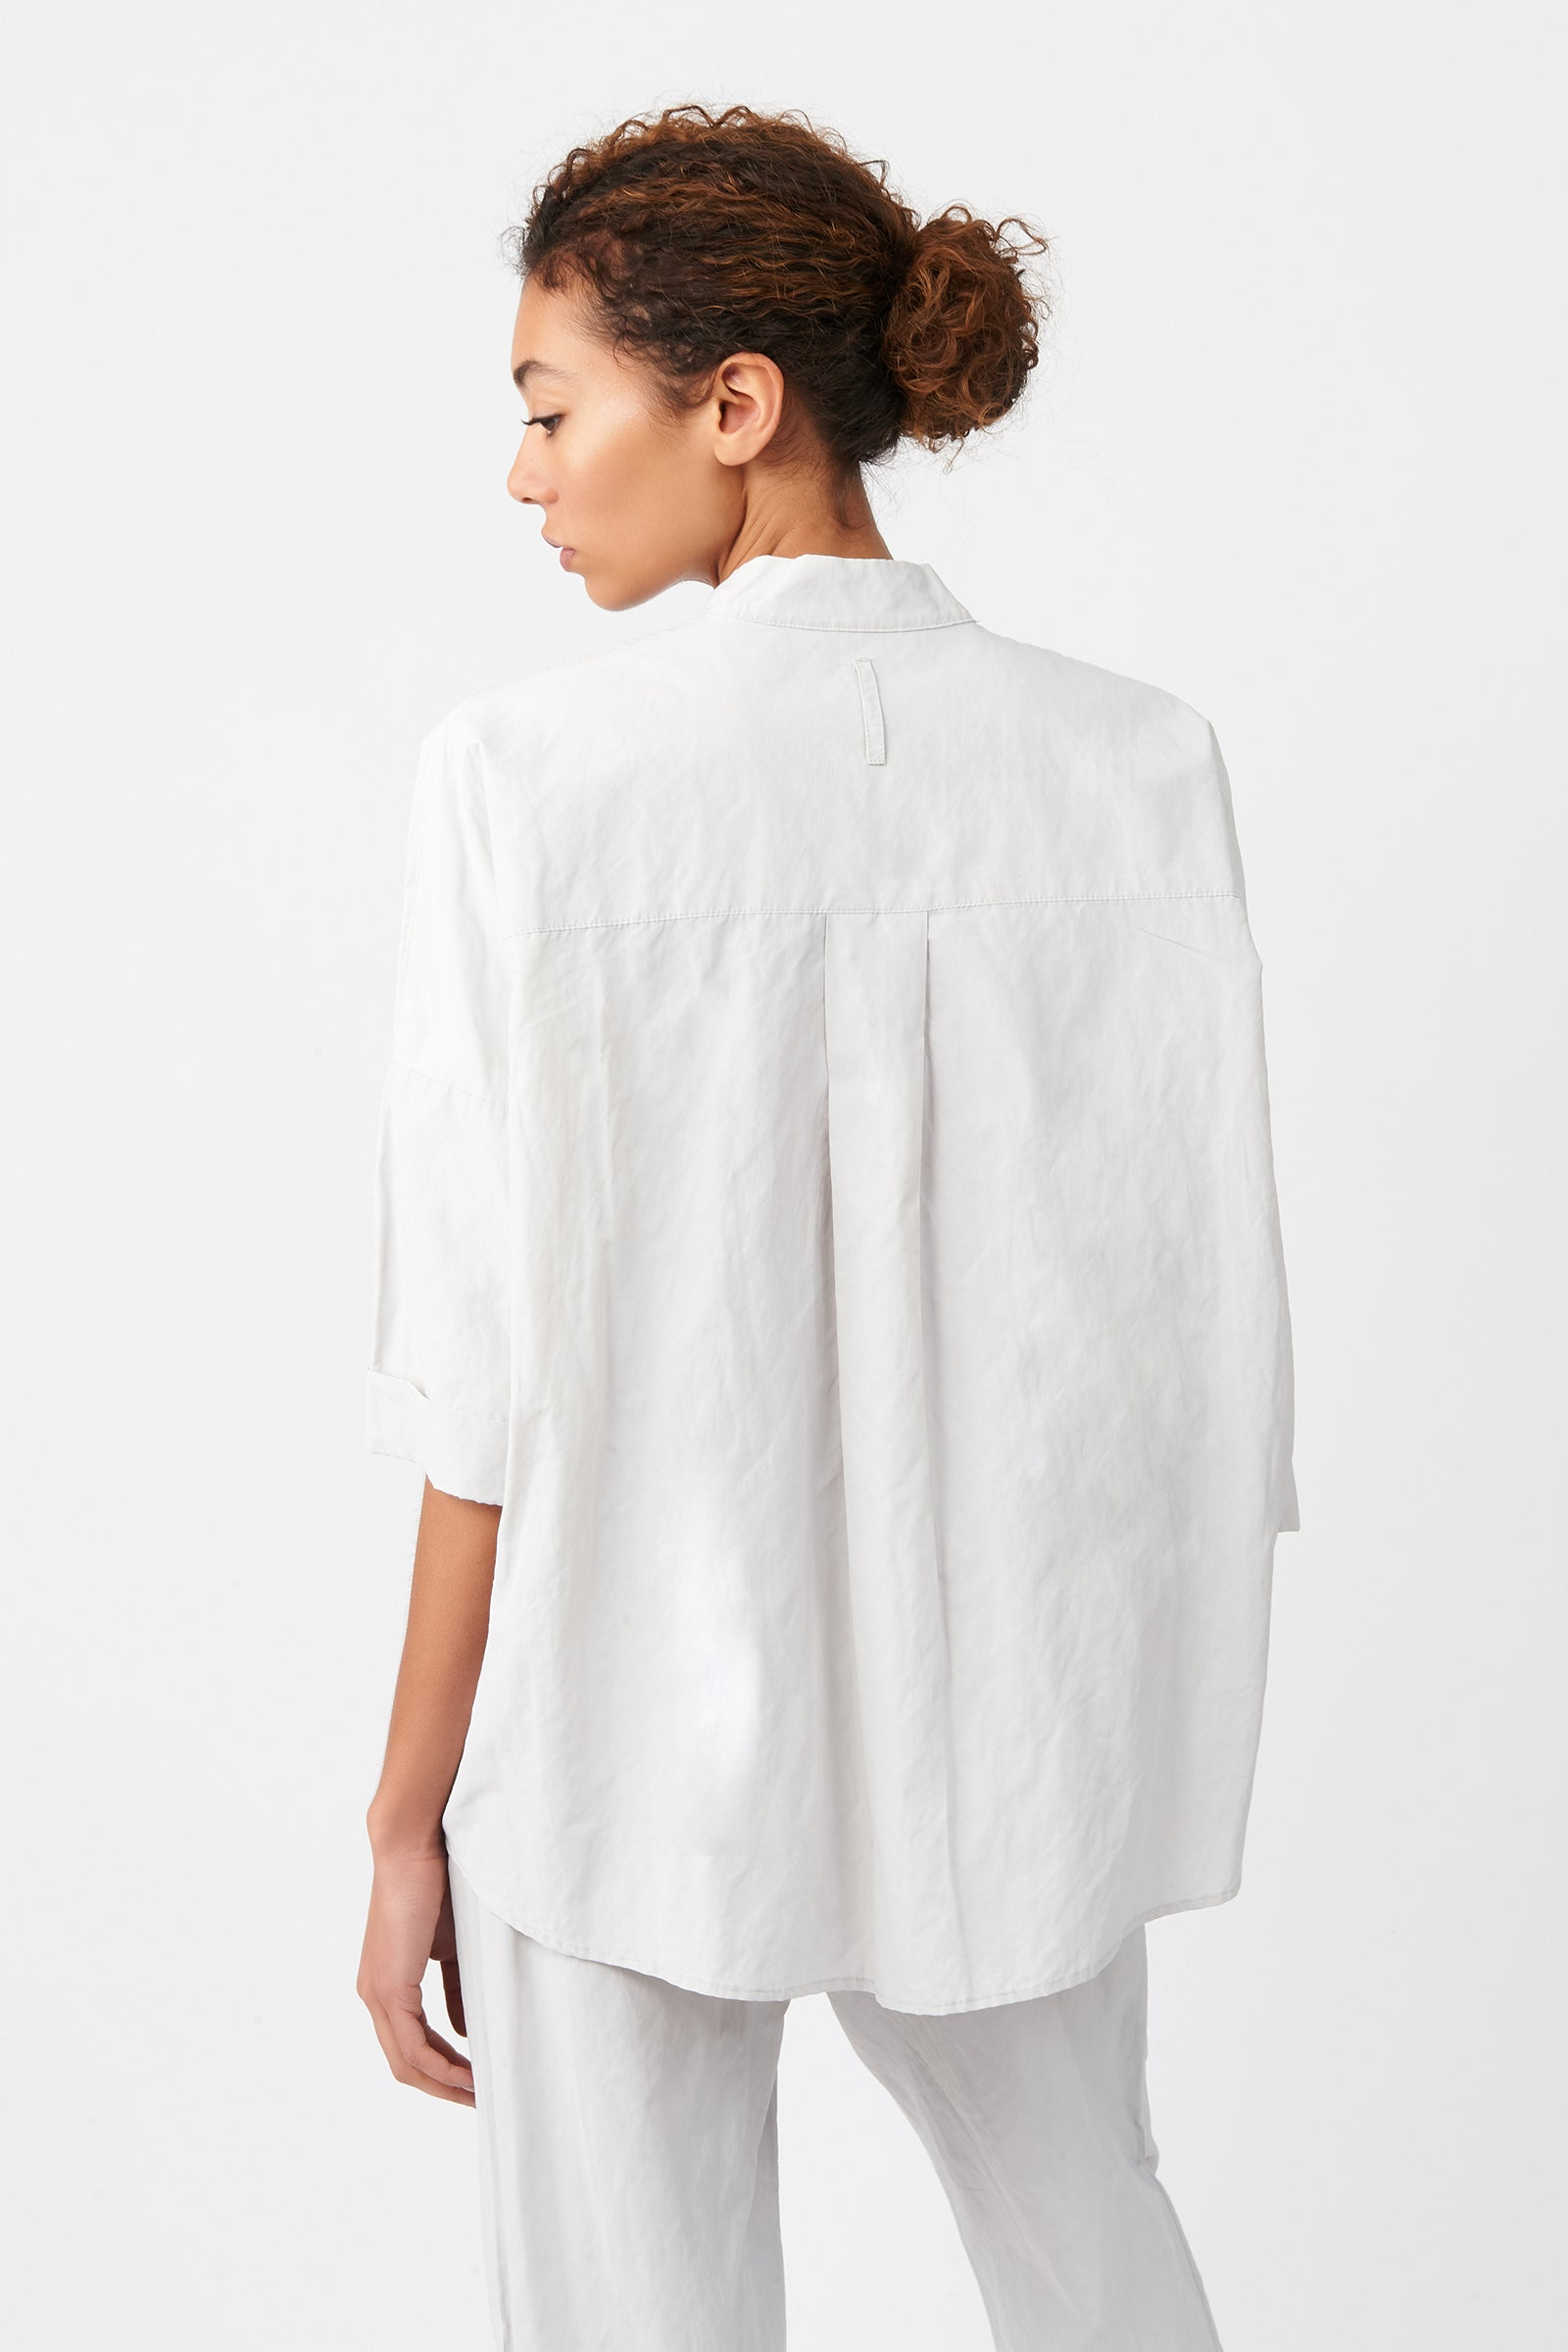 Kal Rieman Pleat Hem Kimono in Stone on Model Back View